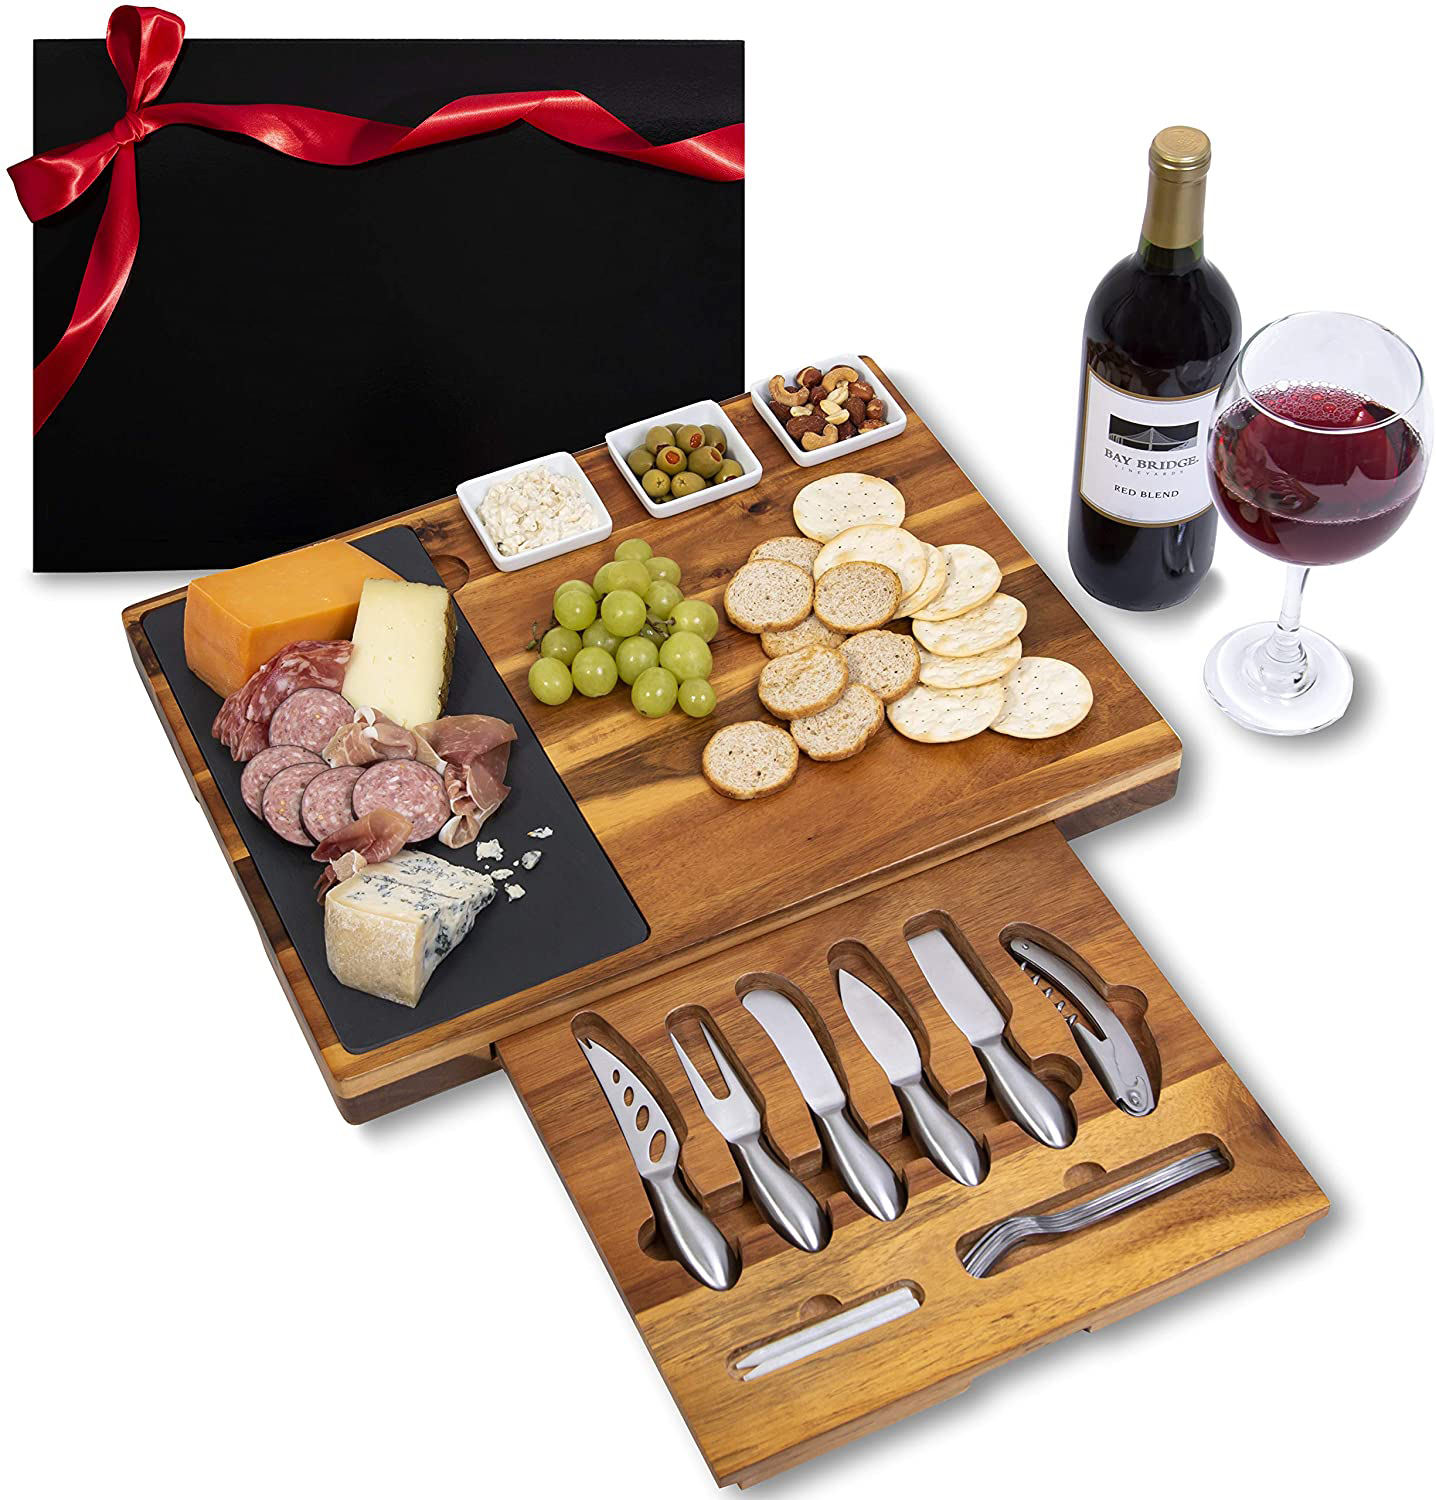 19-Piece Cheese Board and Knife Set Wedding & Holiday Gift Platter or House Warming Present Acacia Wood & Slate Serving Tray